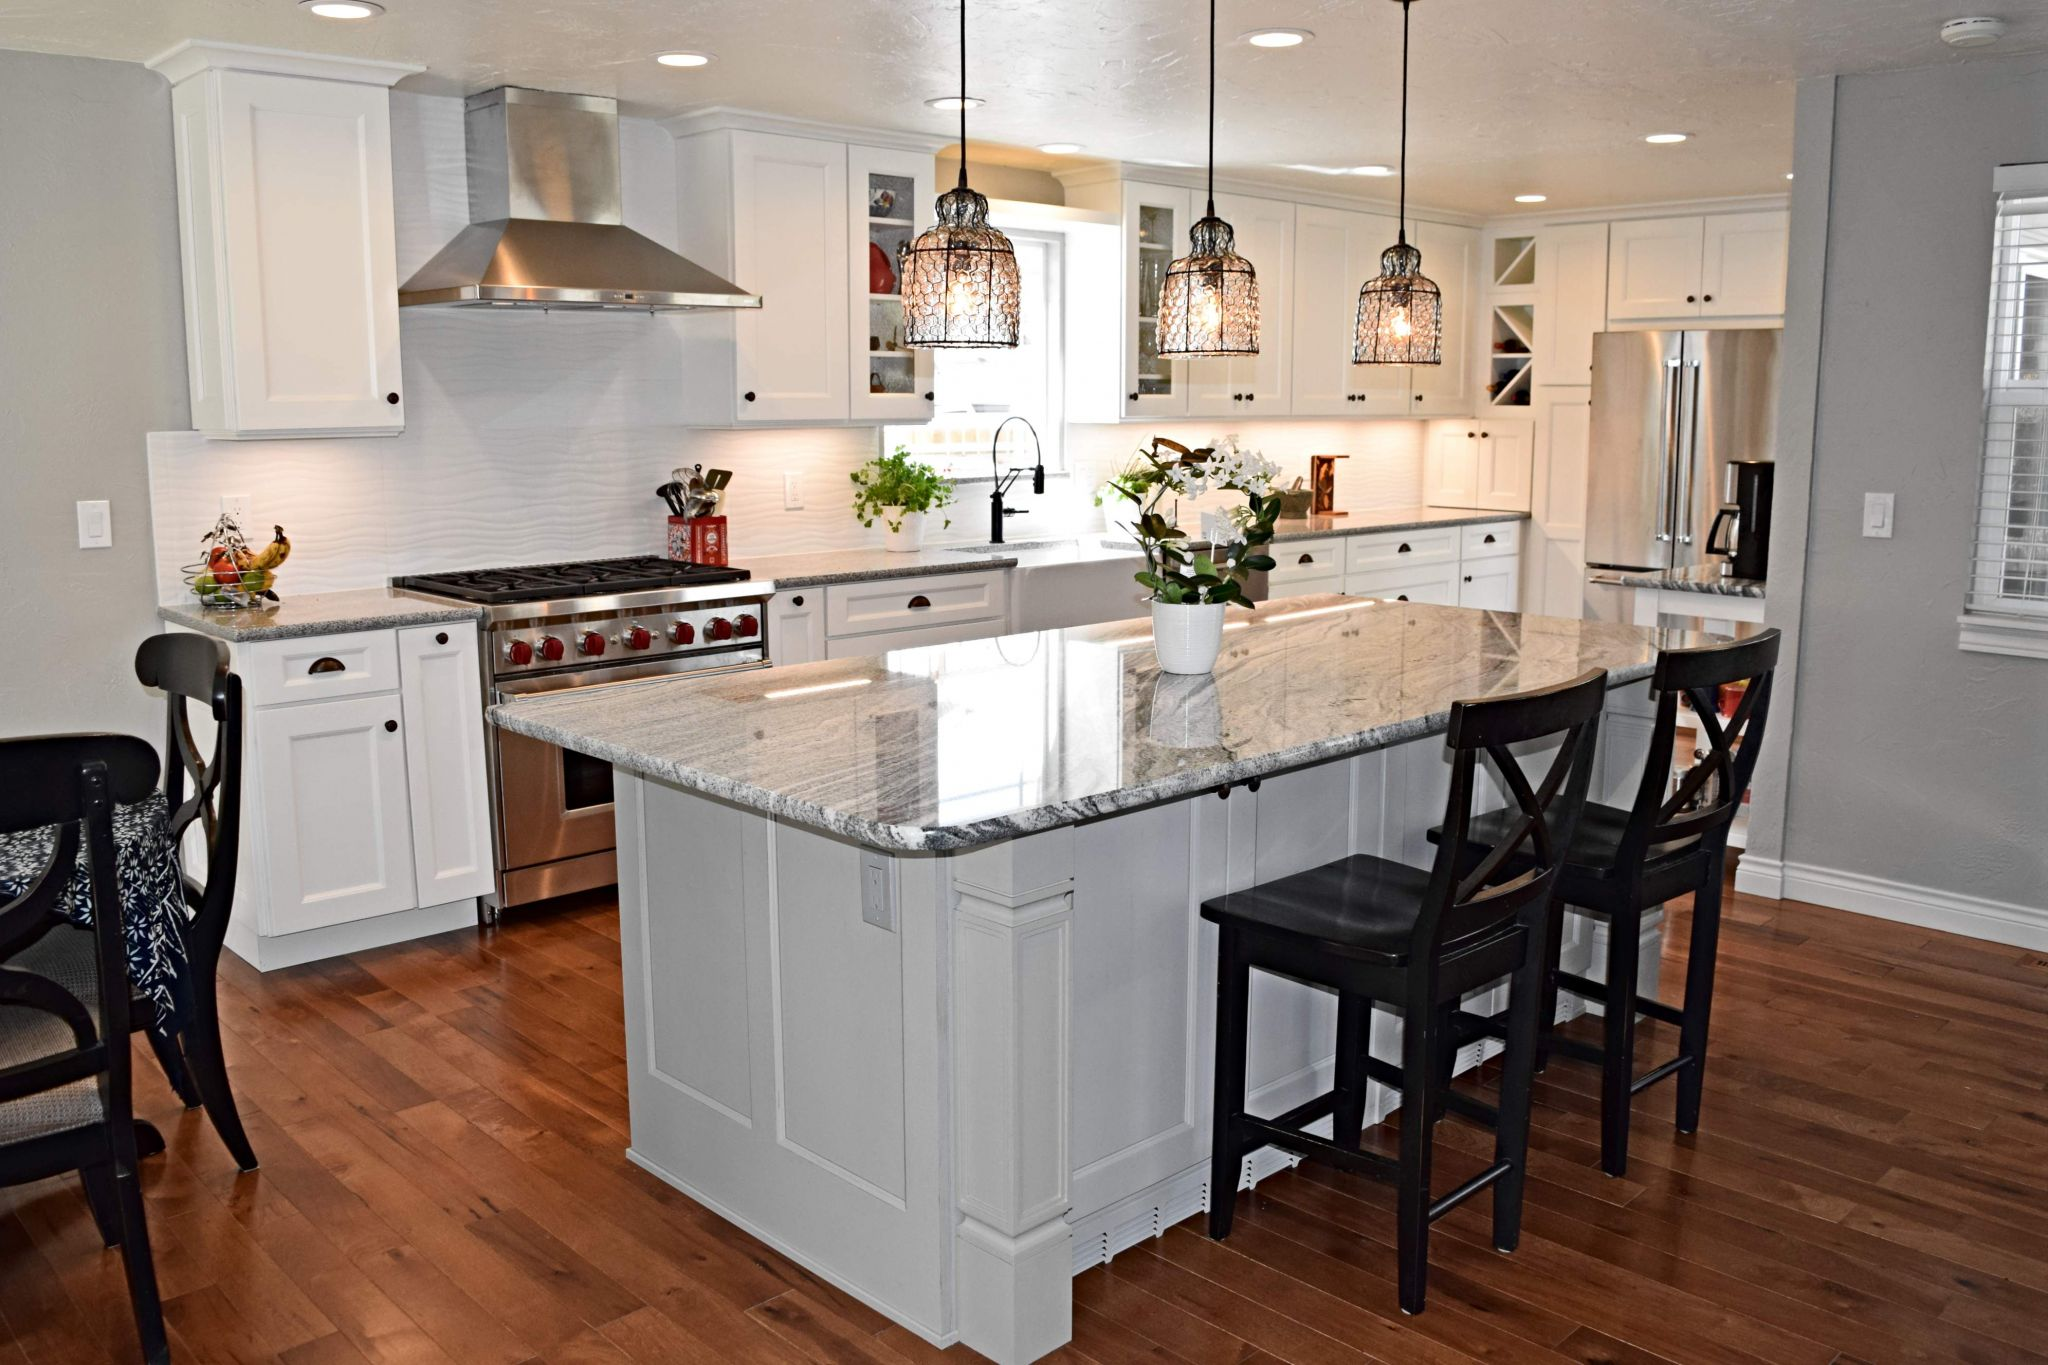 Kitchen Cabinets Denver | BKC Kitchen and Bath